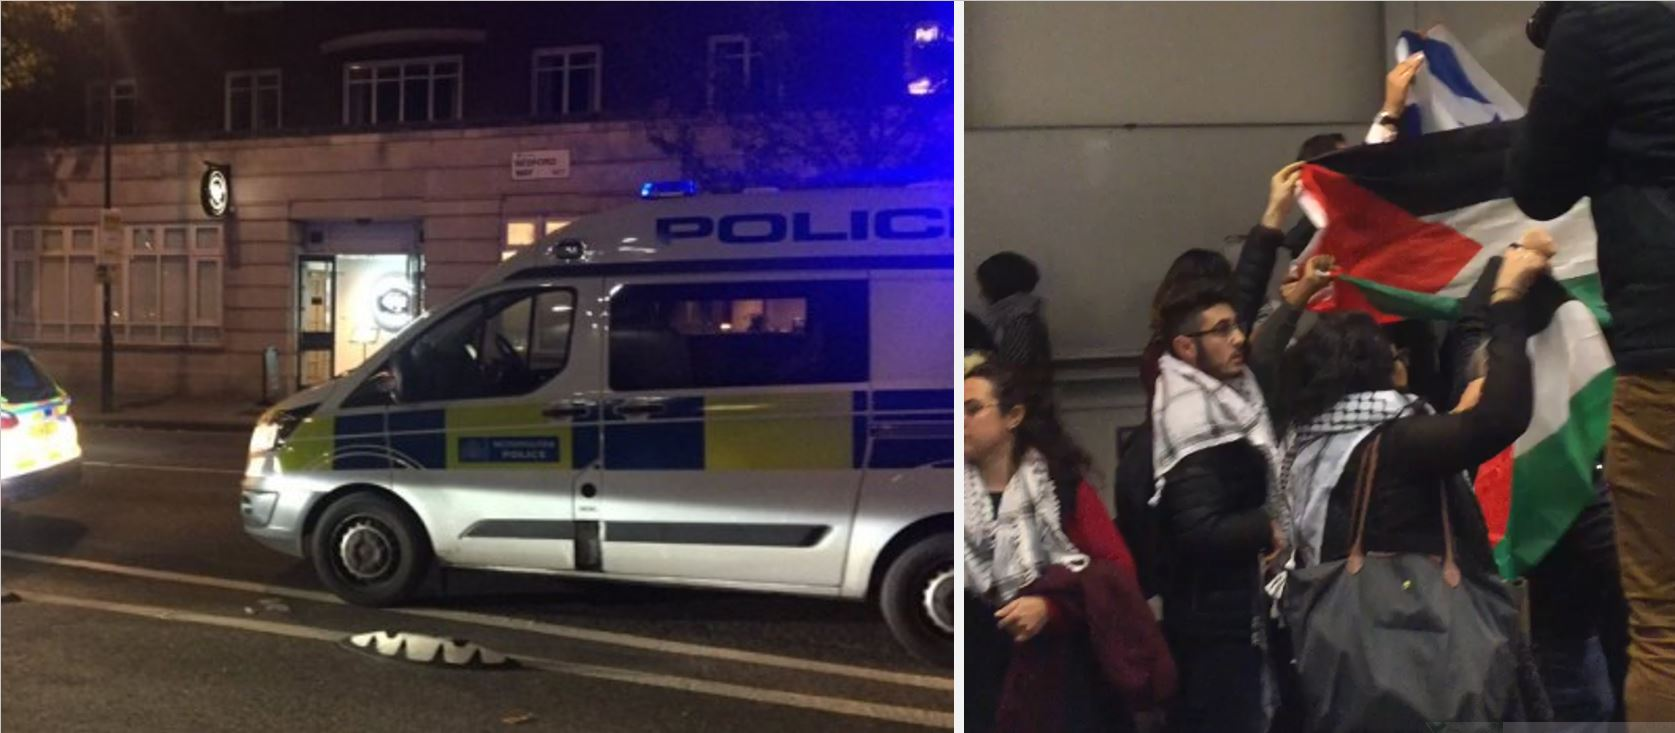 Police called to London university as violent anti-Israel protest forces attendees to lock themselves in room